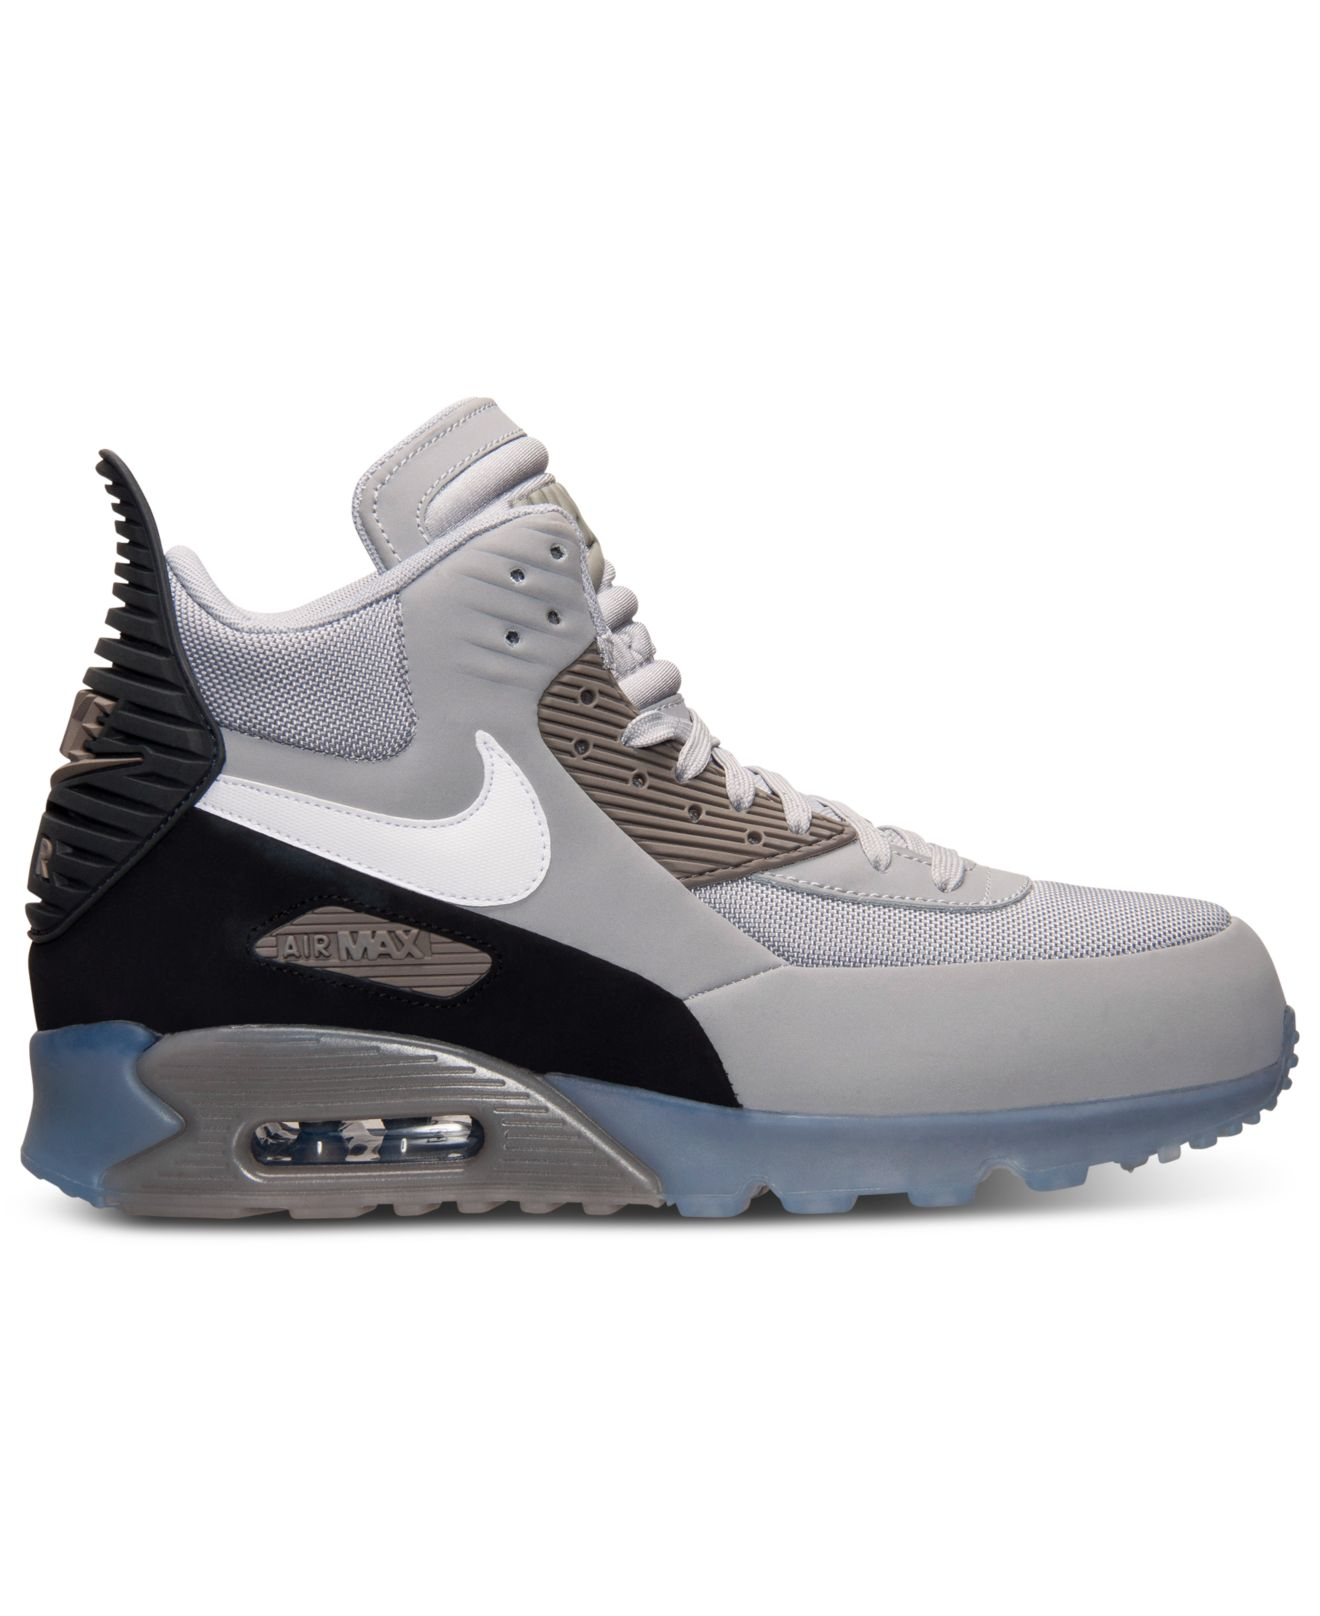 nike men 39 s air max 90 sneakerboot ice from finish line in. Black Bedroom Furniture Sets. Home Design Ideas